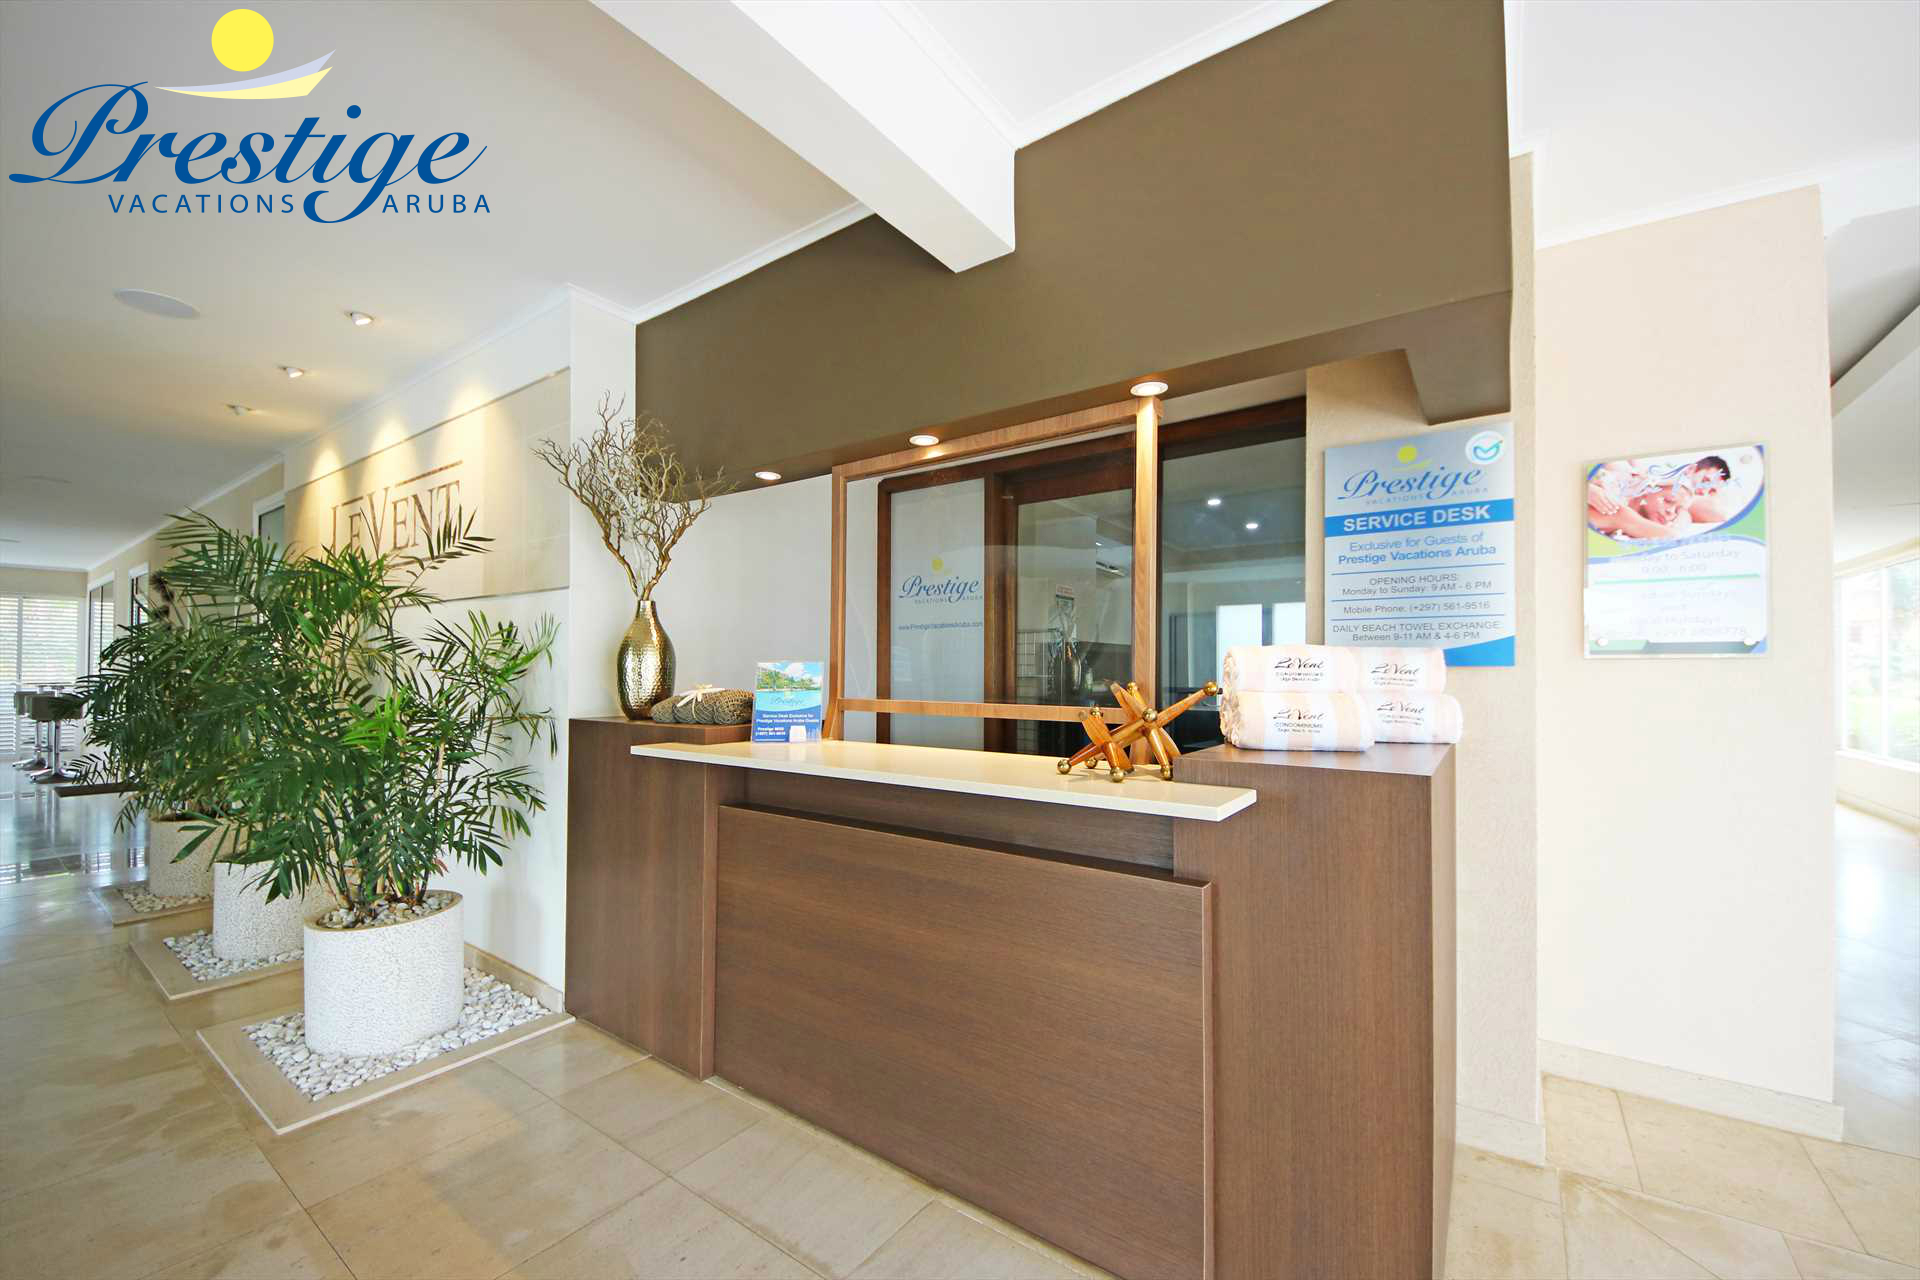 Prestige Vacations Aruba exclusive Service desk in the lobby of the LeVent Resort